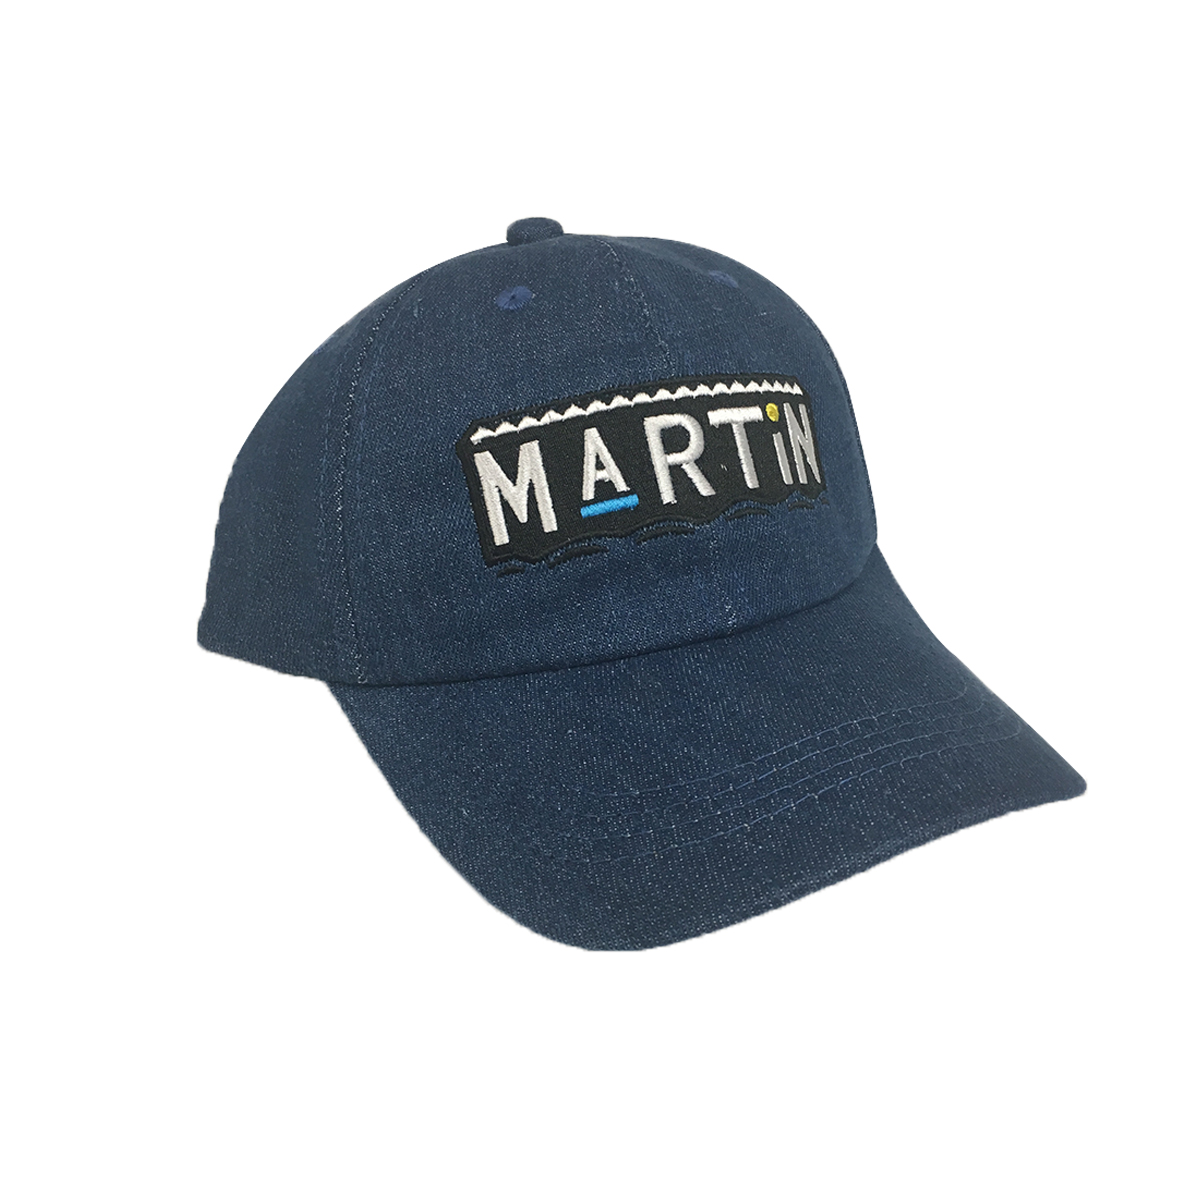 603c3015f82 Martin Blue Denim Hat Baseball Cap Buckle Dad TV Show 90s ...